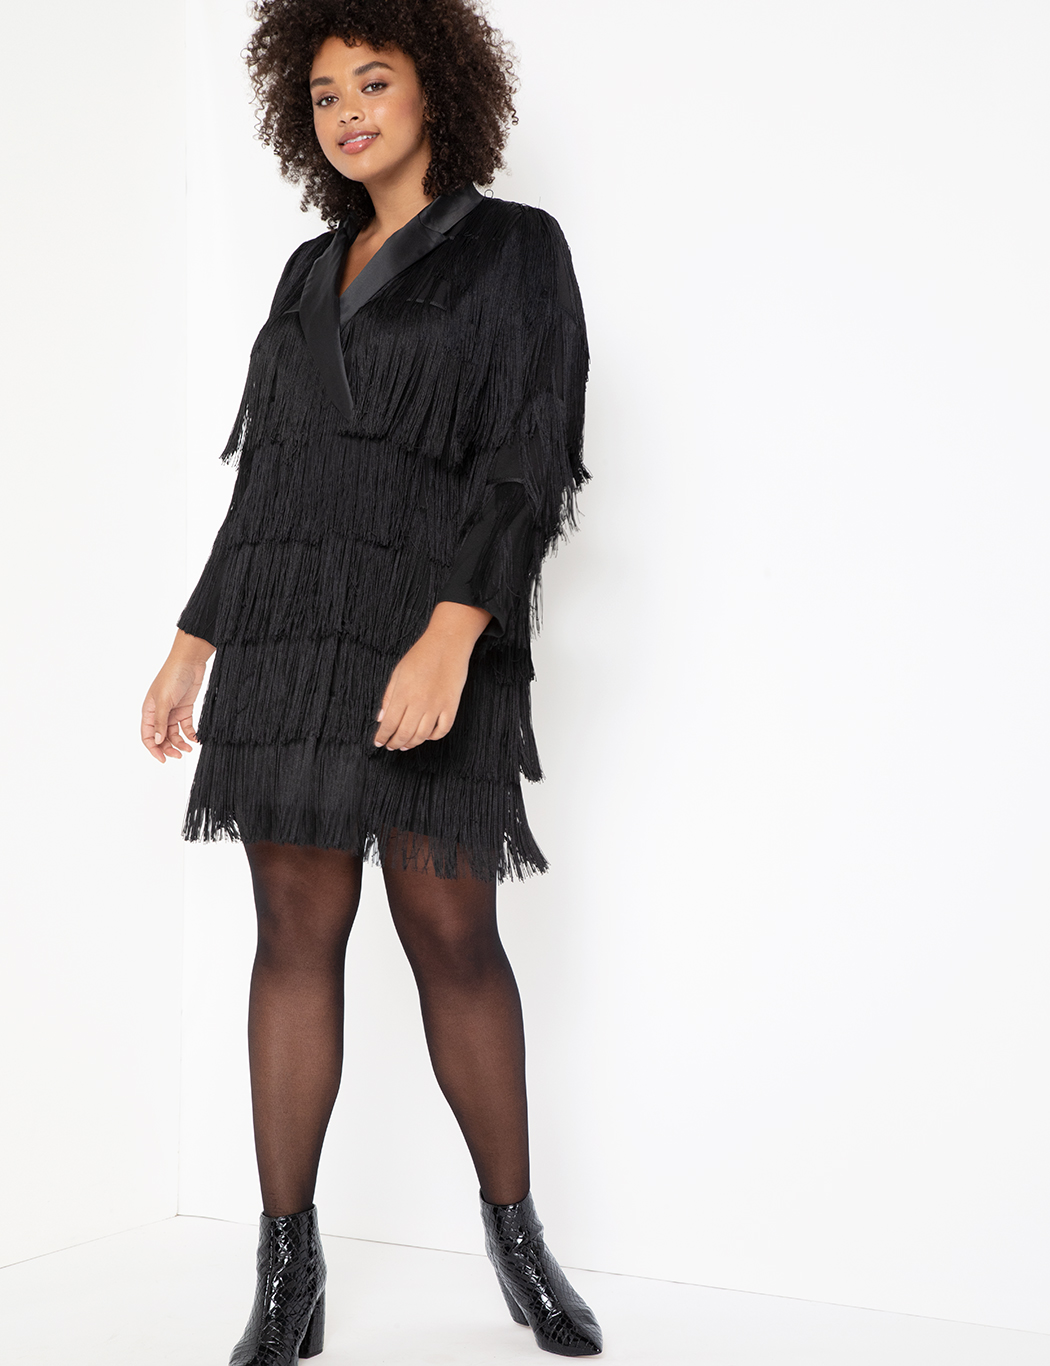 Fringe Blazer Dress